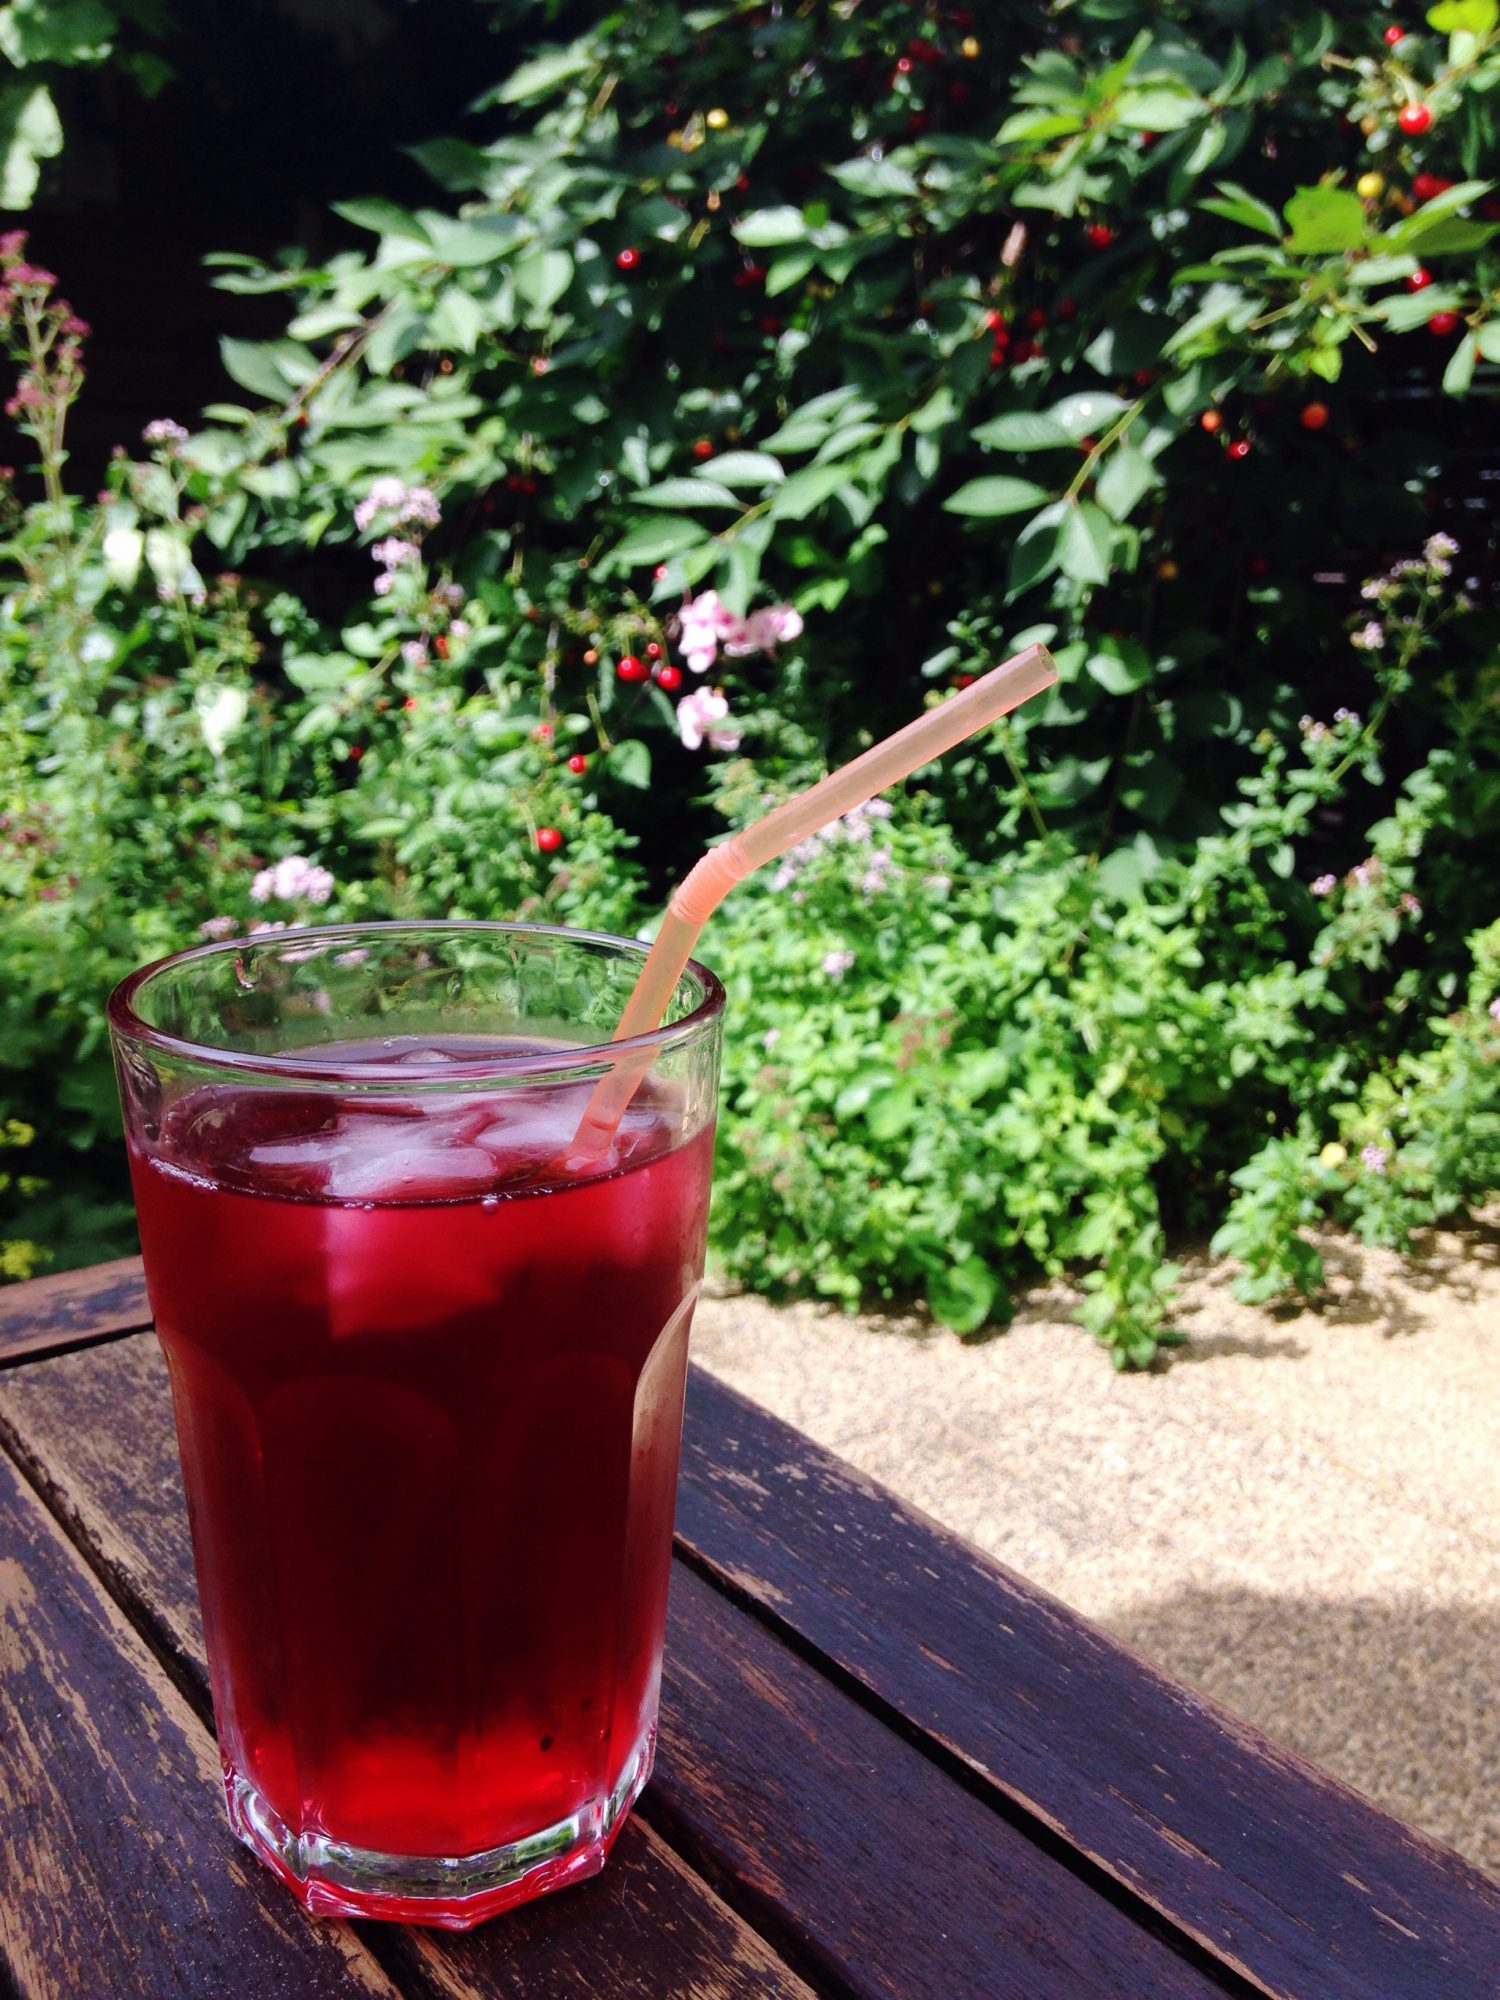 Glass of Cherry Juice and a Bendy Straw